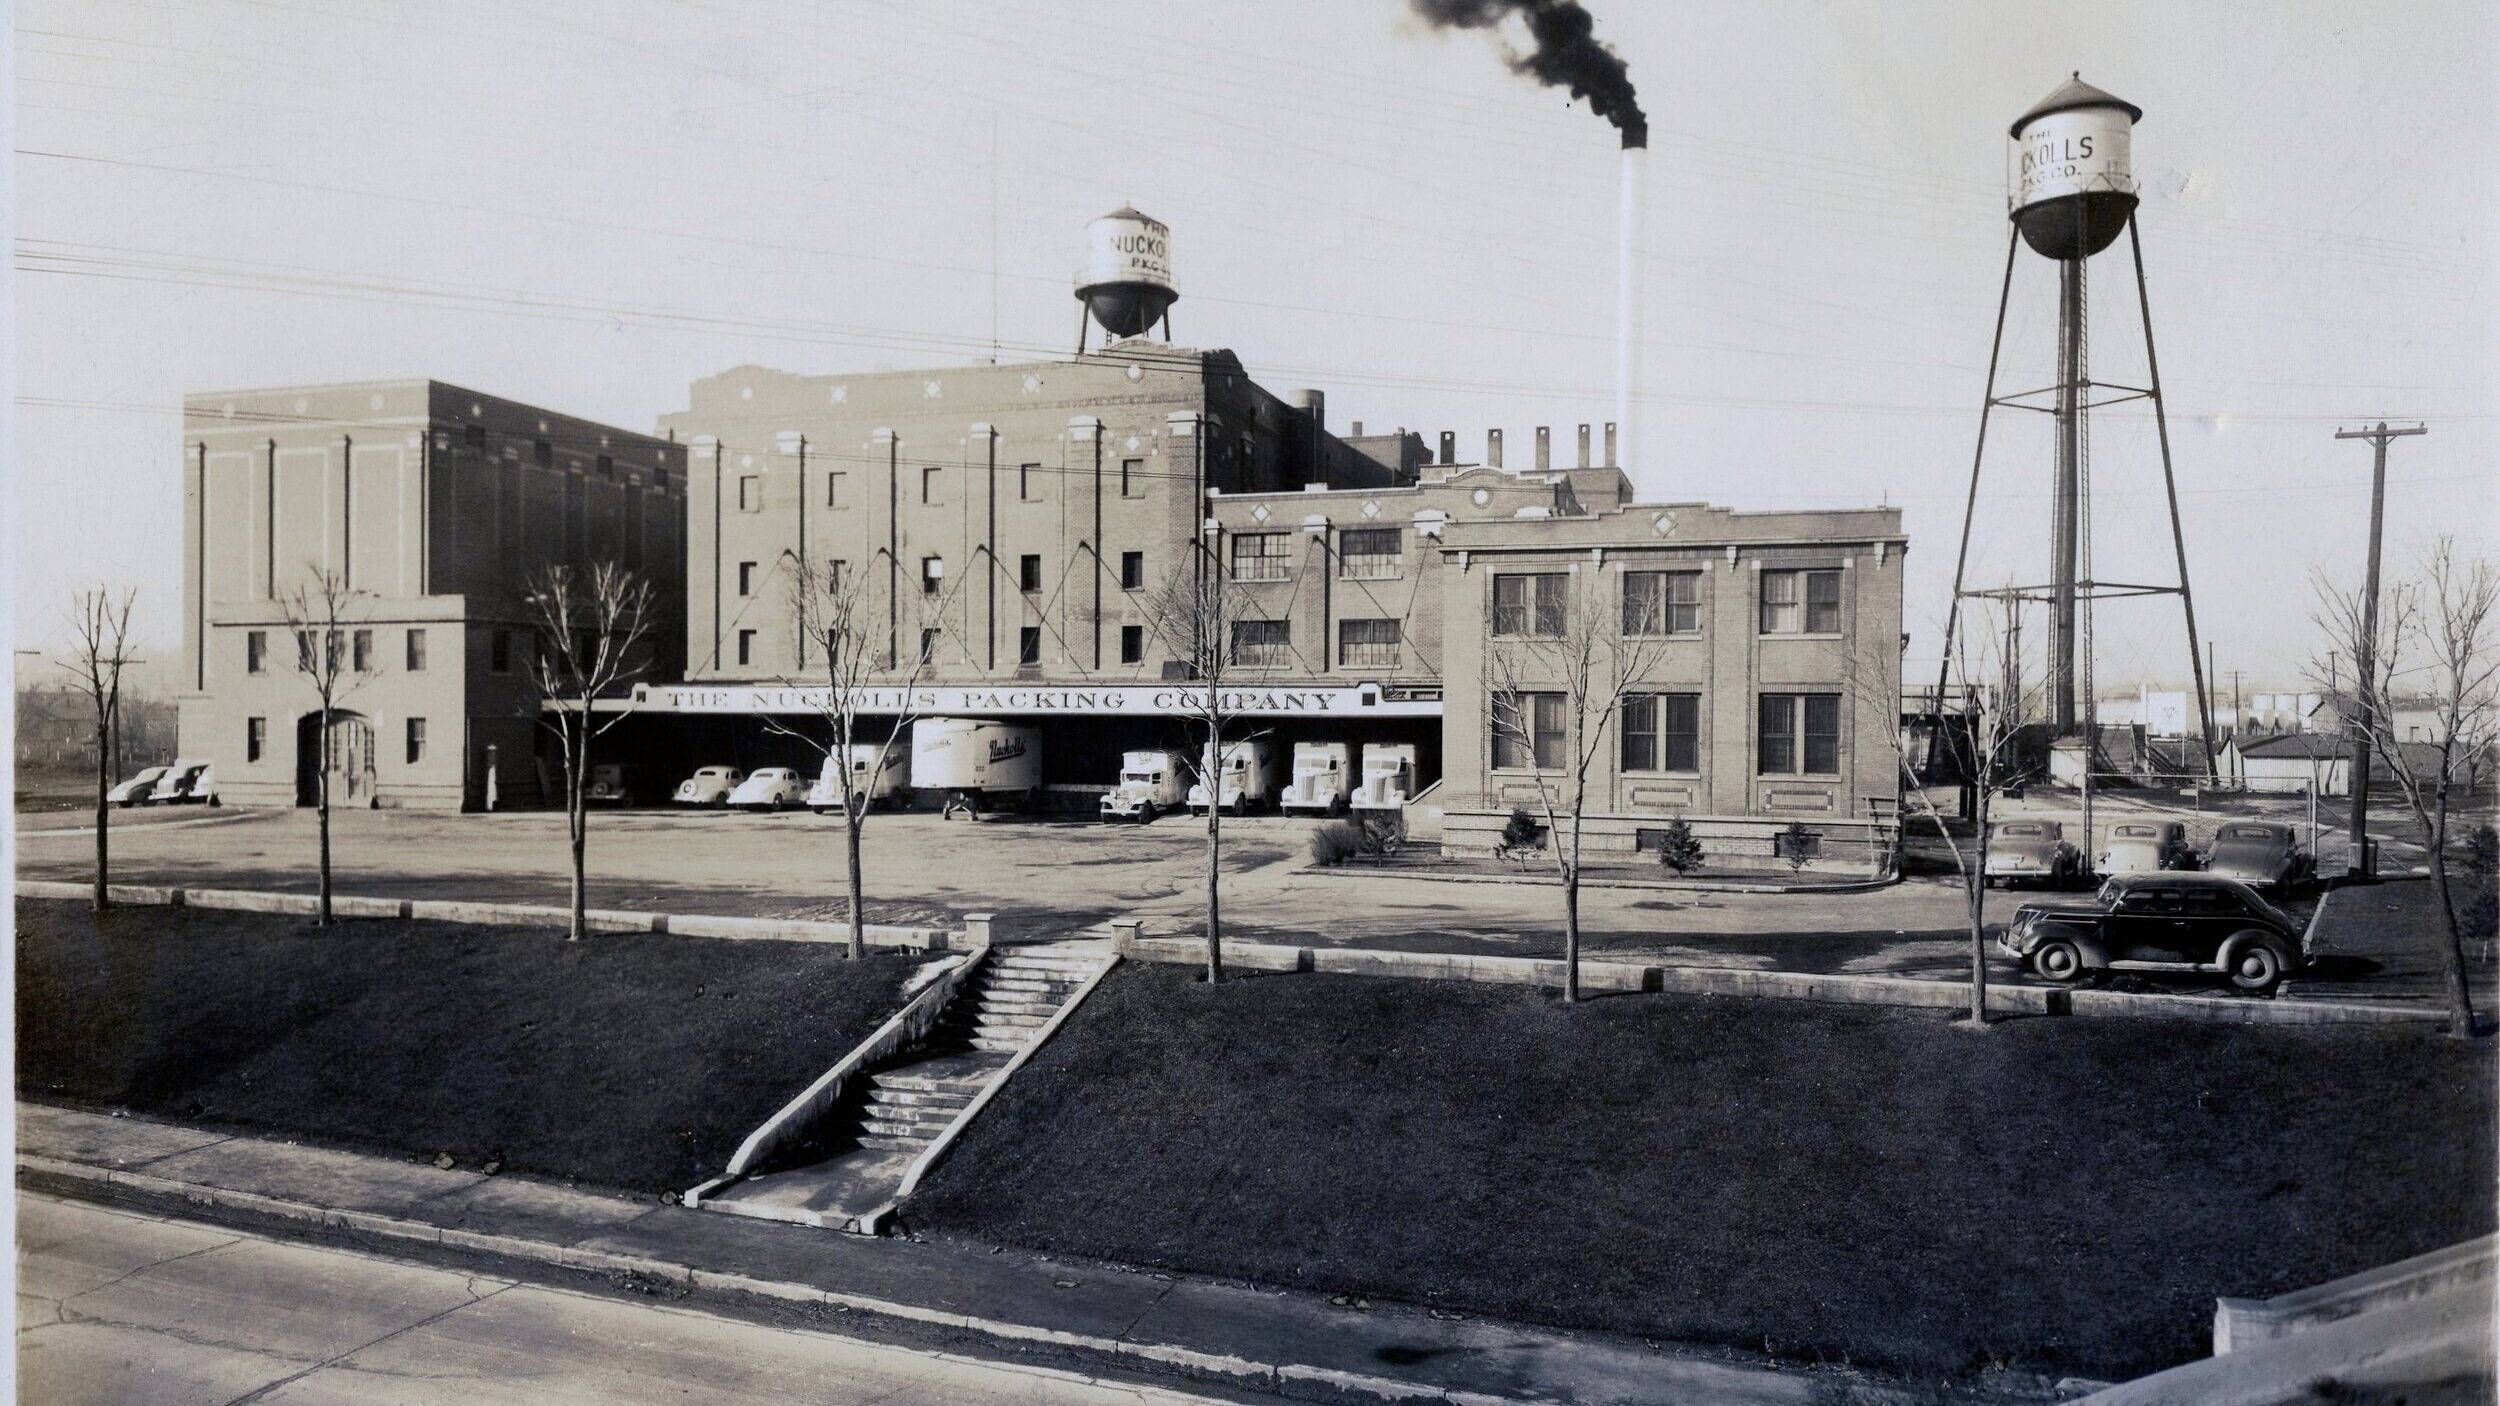 Nuckolls Packing Company in Winter 1940.